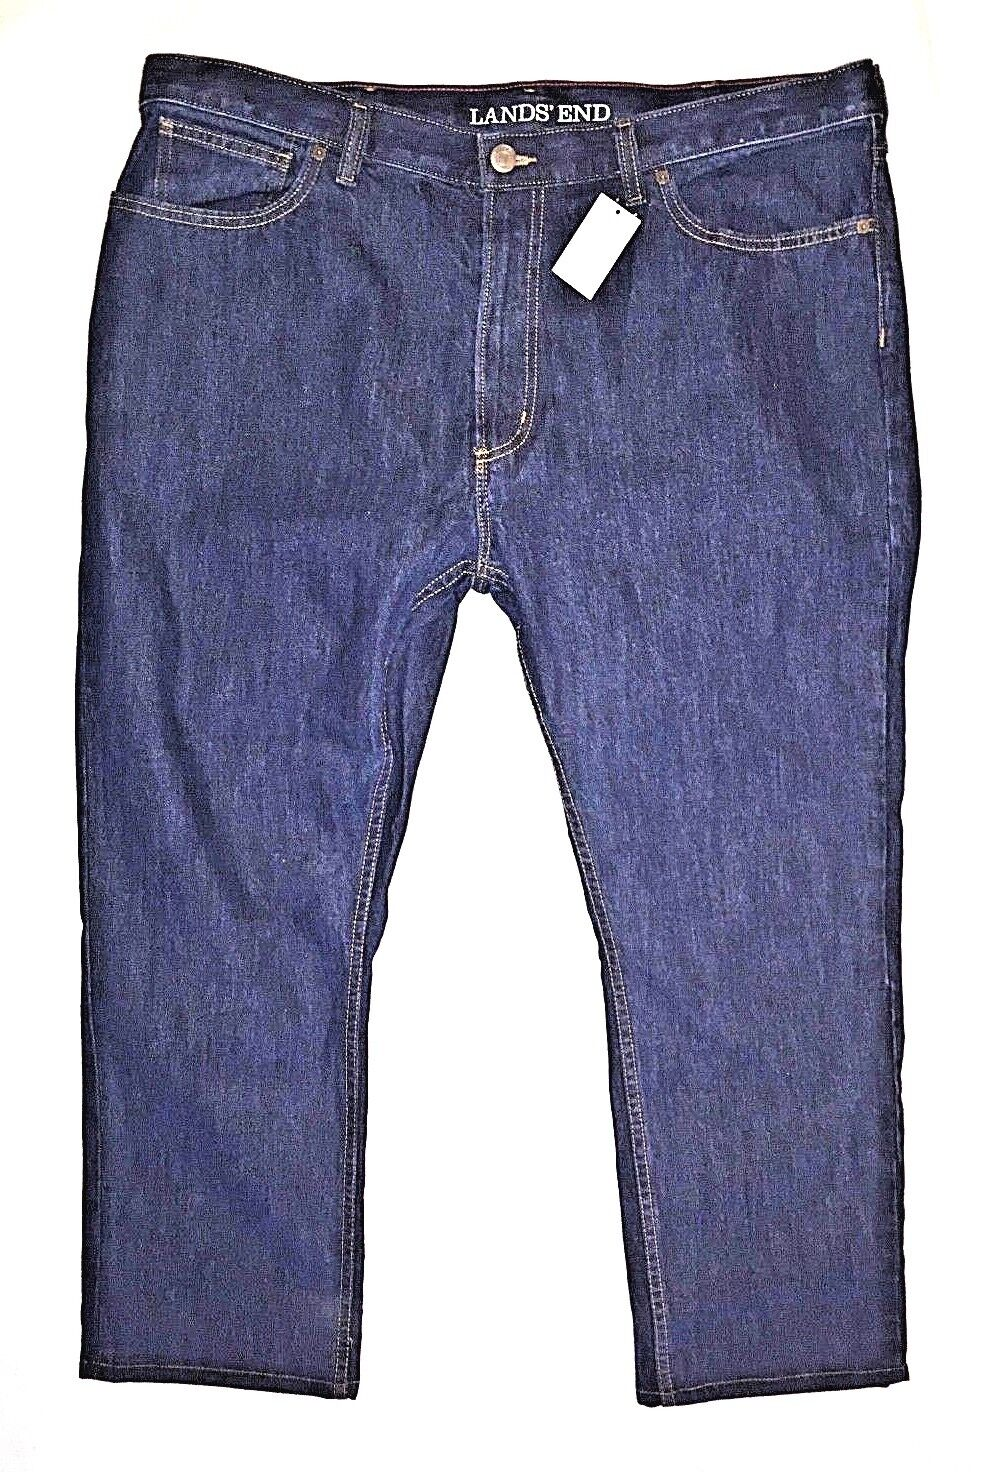 Lands' End Men's Straight Fit bluee Jeans Size 42 X 28 New With Tags